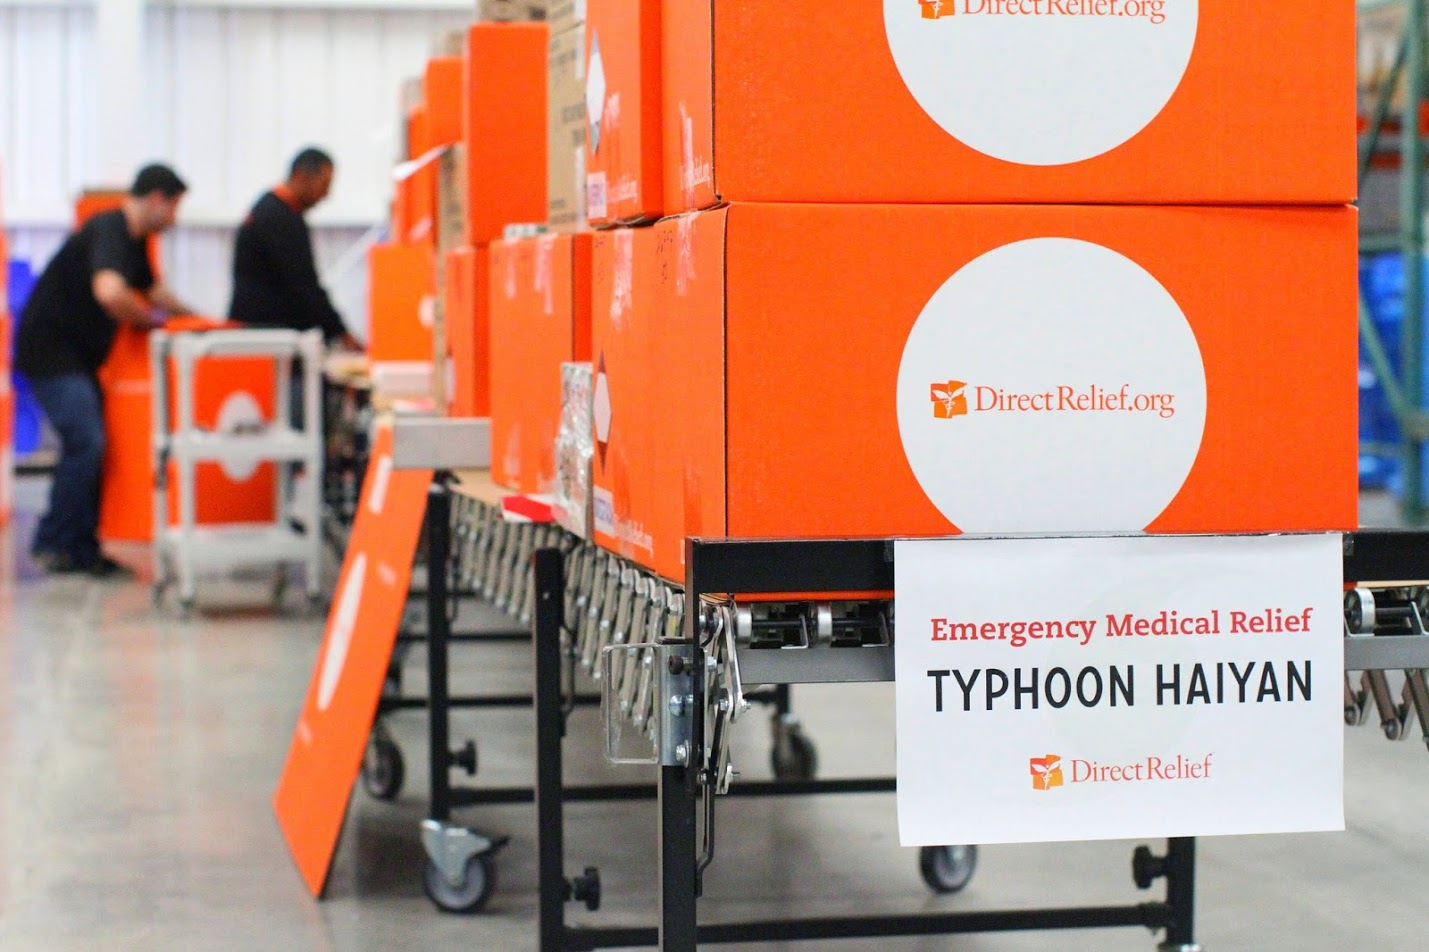 Shipments of medical aid are prepared in response to Typhoon Haiyan. (Direct Relief photo)